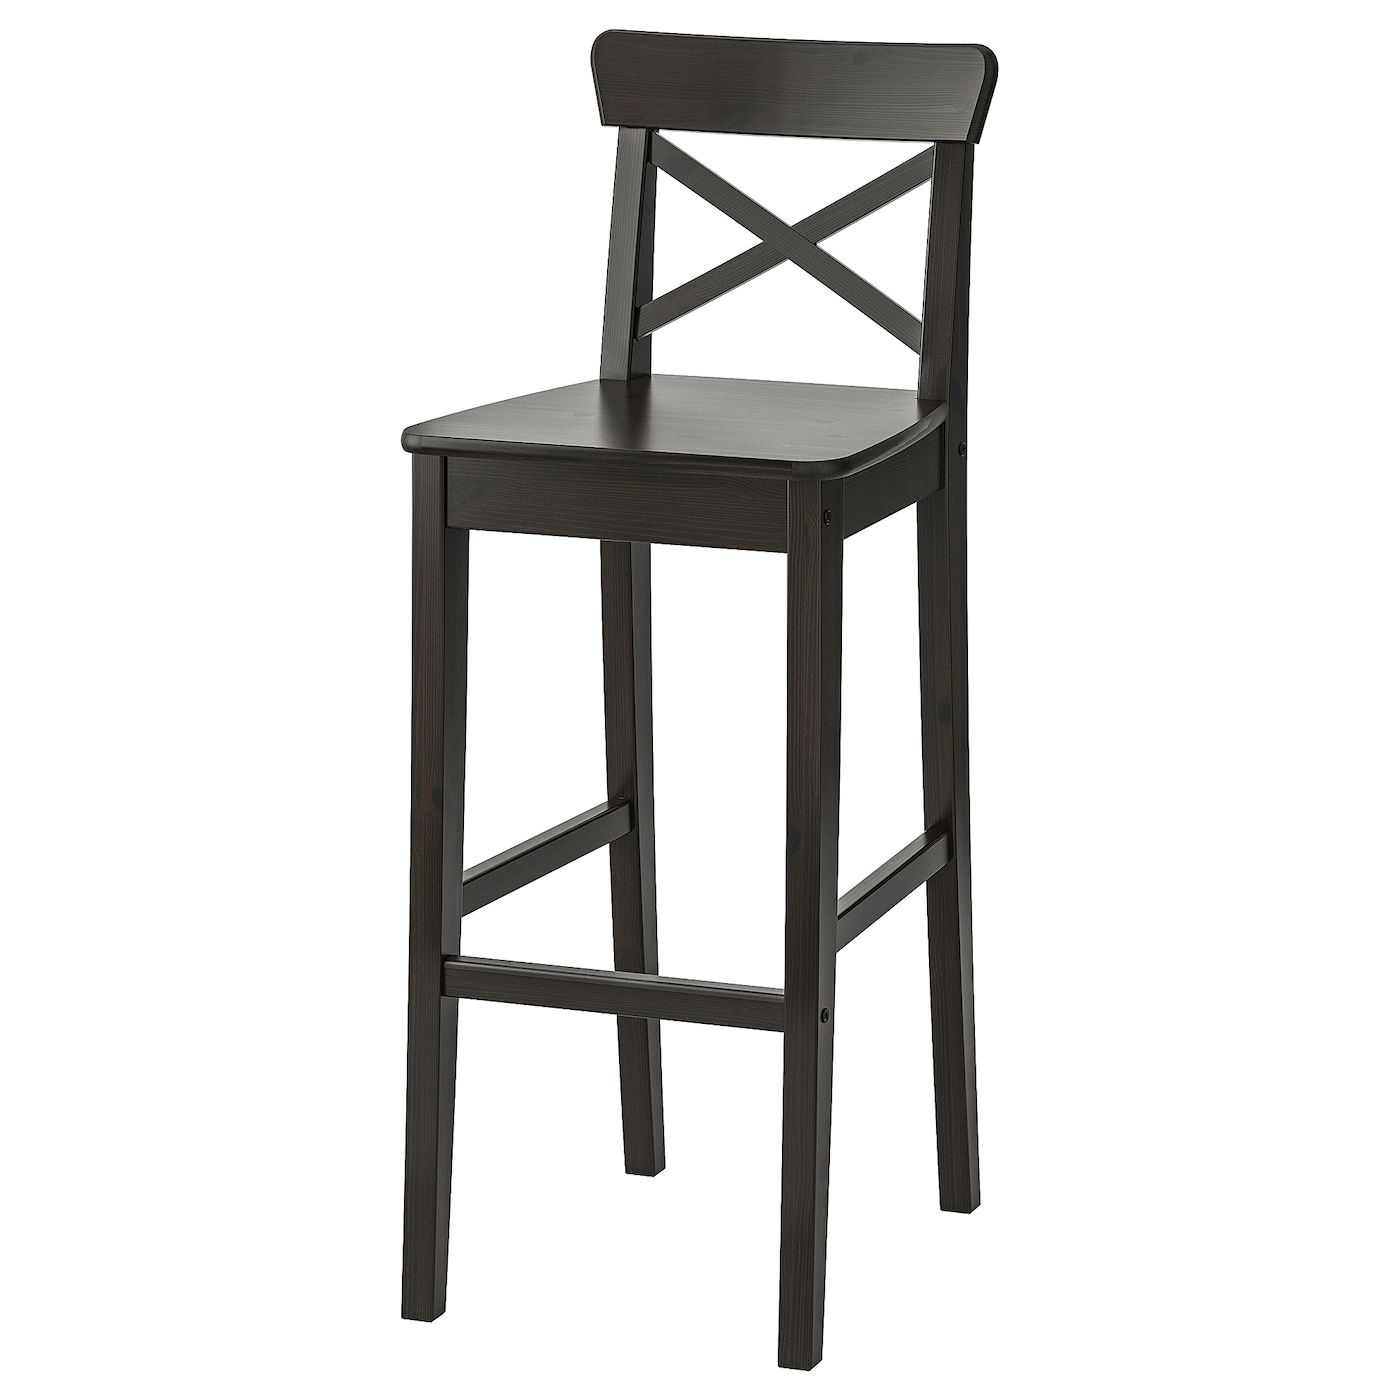 Ingolf Bar Stool With Backrest Brown Black 29 1 8 In 2020